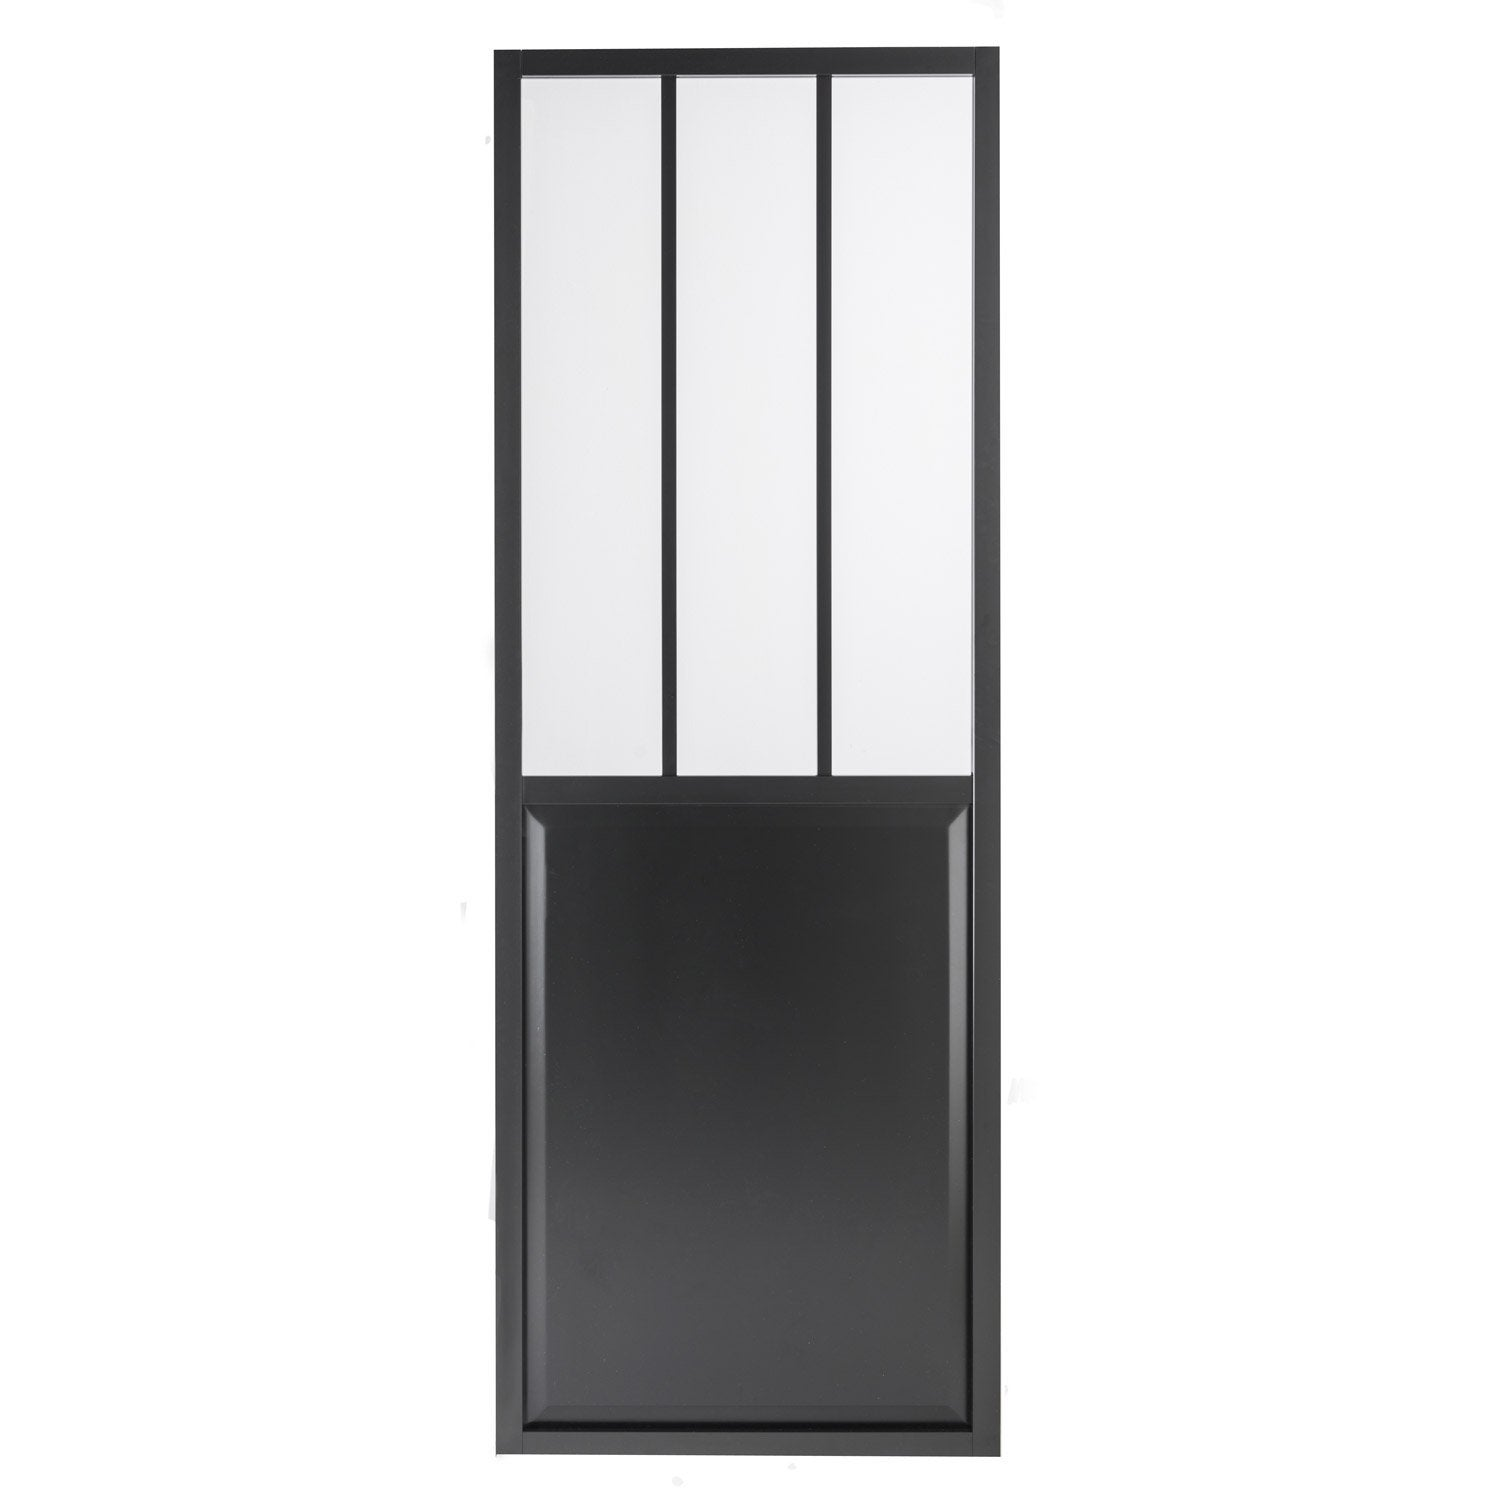 Porte coulissante aluminium noir atelier verre clair for Kit decoration porte leroy merlin